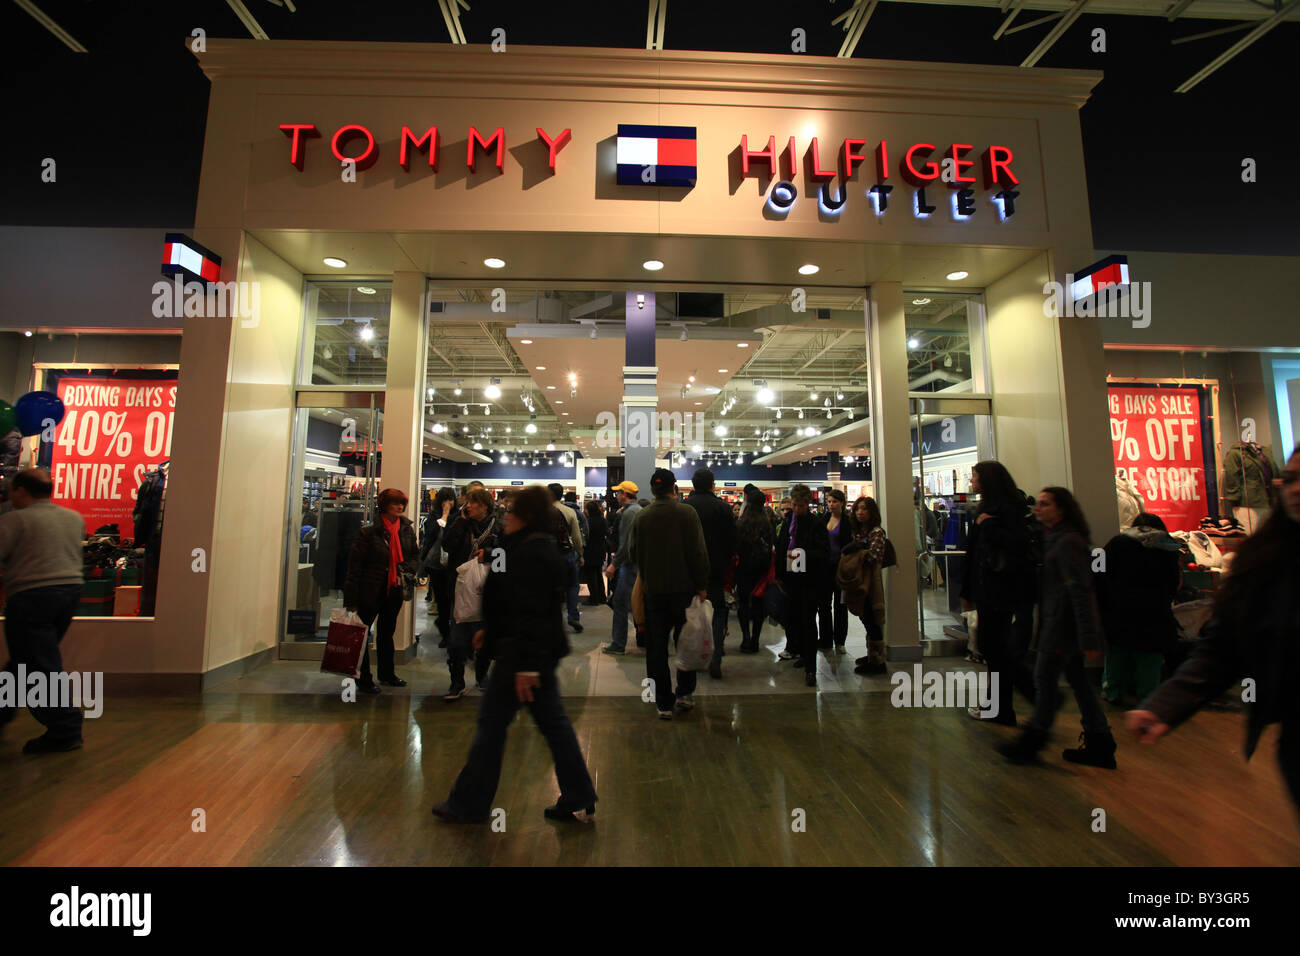 tommy hilfiger outlet store in vaughan mills mall in. Black Bedroom Furniture Sets. Home Design Ideas